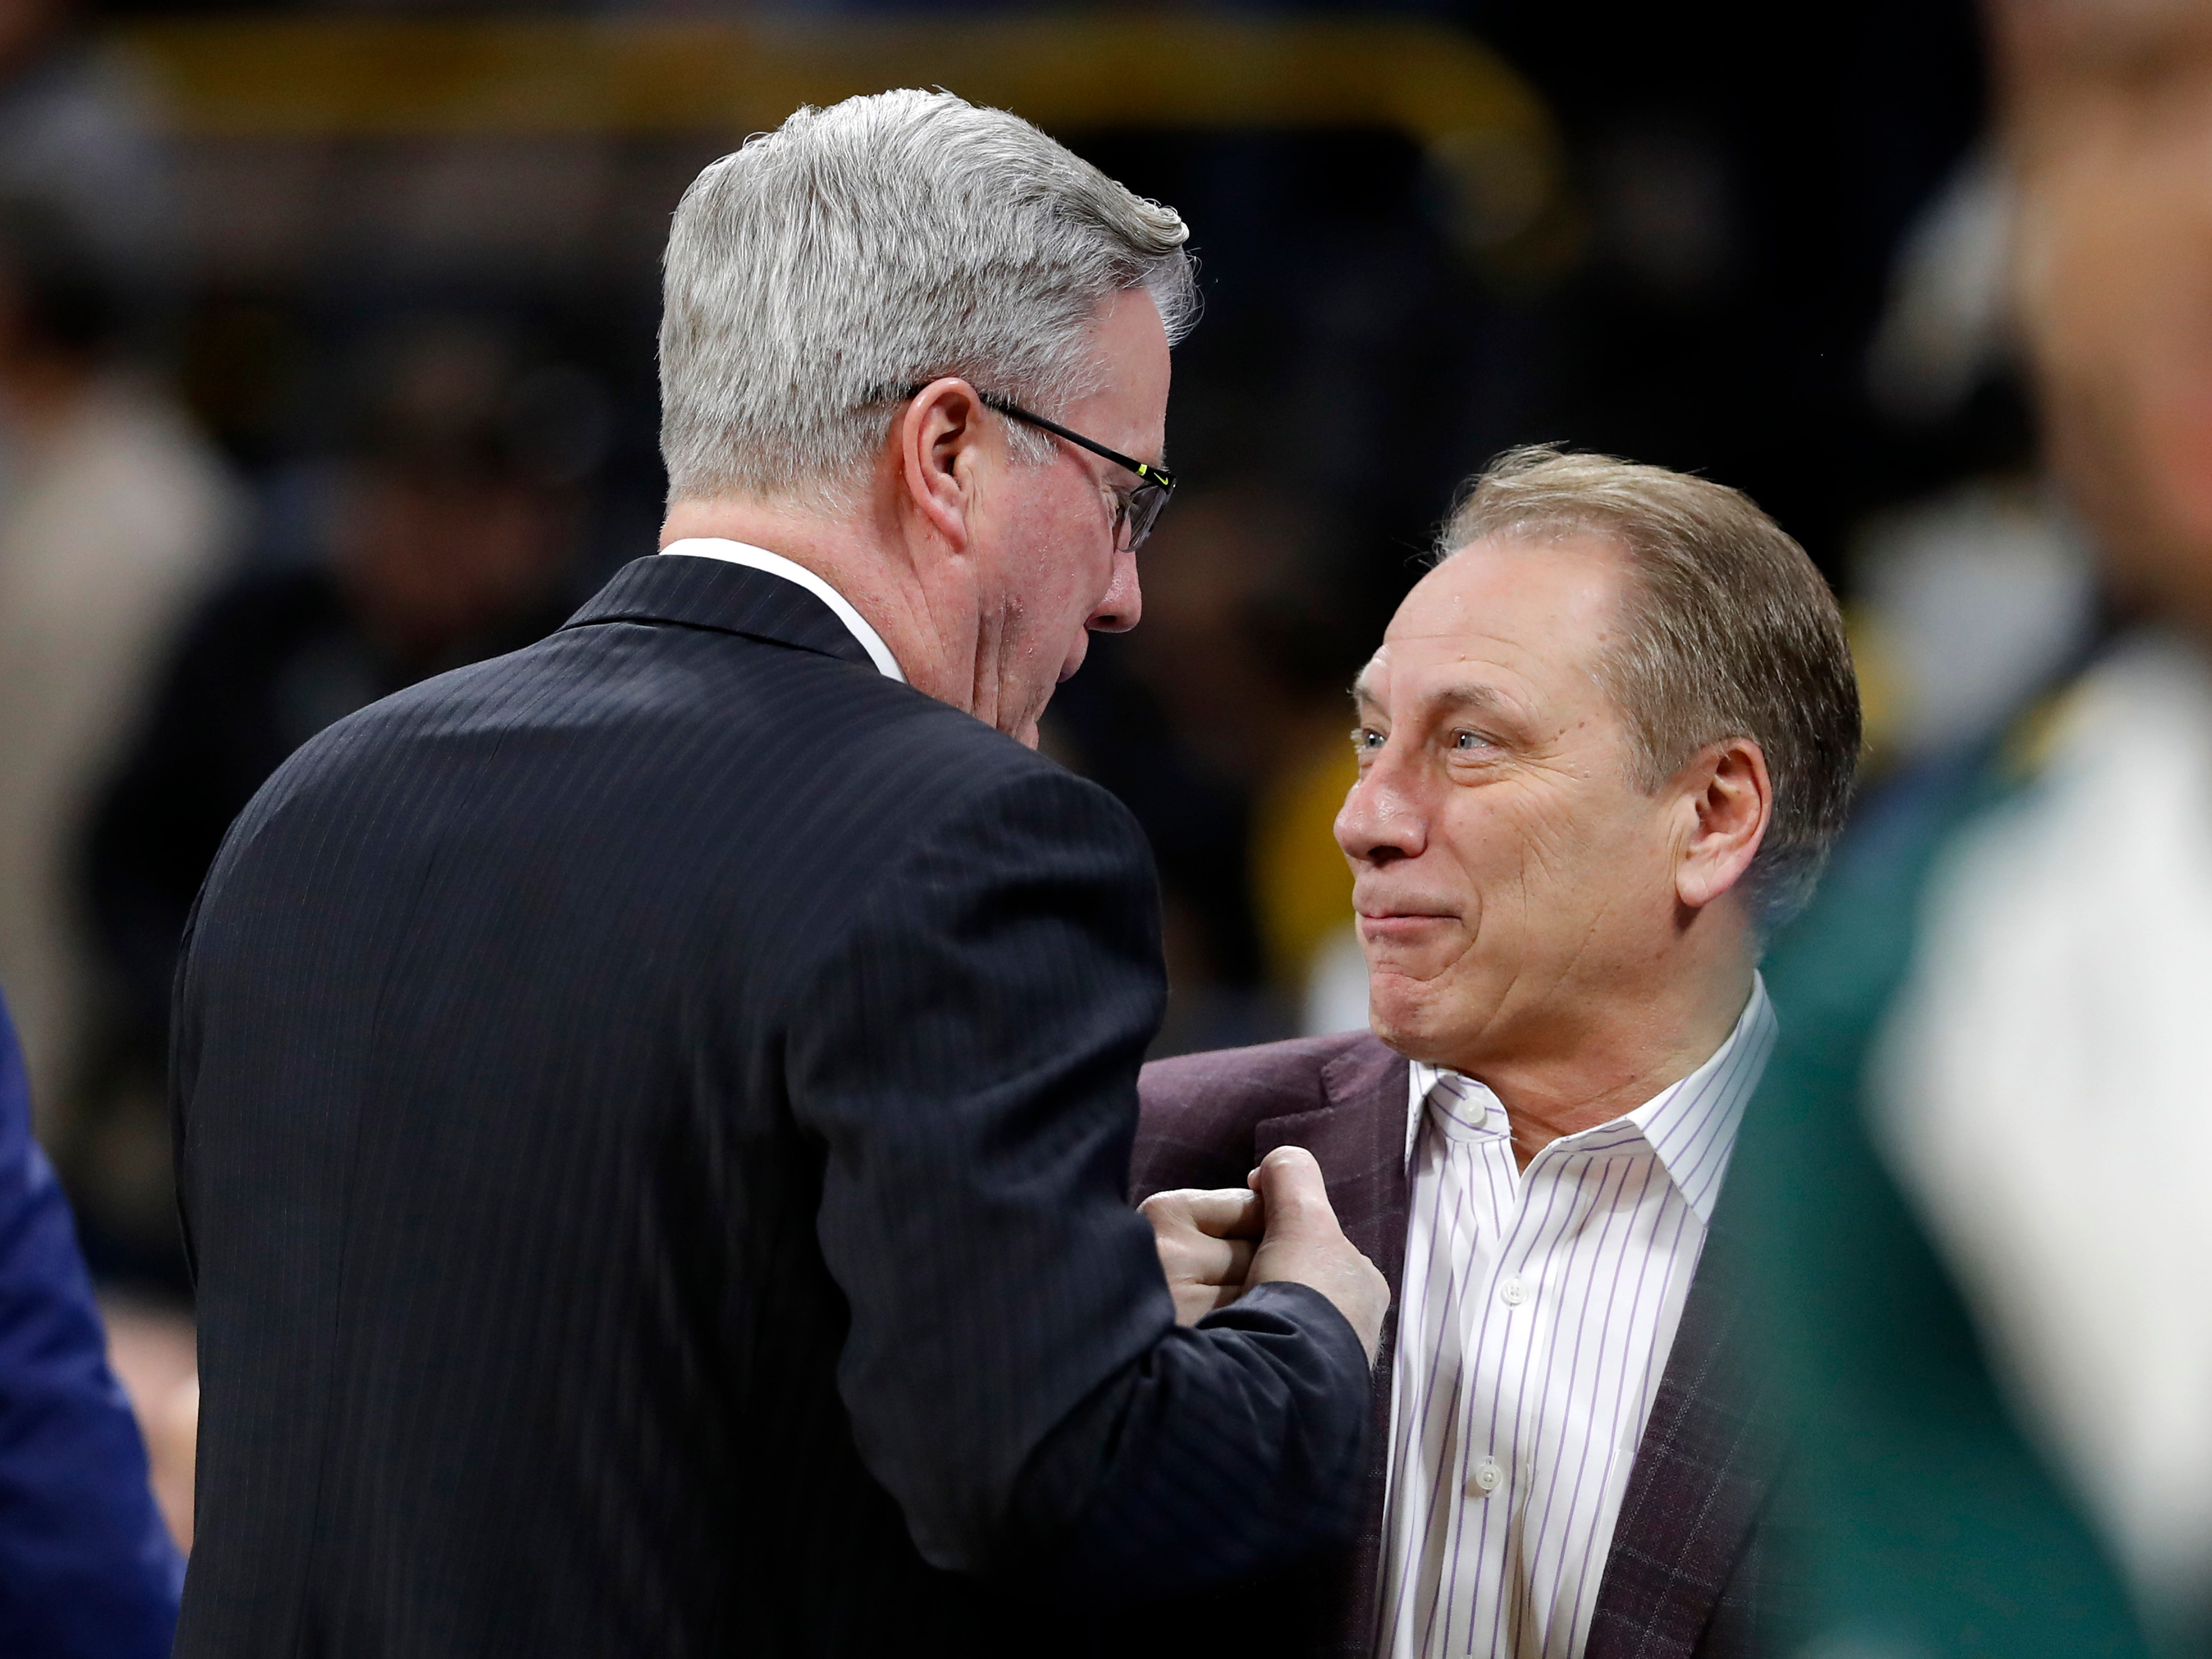 Iowa coach Fran McCaffery, left, talks with Michigan State coach Tom Izzo before an NCAA college basketball game Thursday, Jan. 24, 2019, in Iowa City, Iowa.